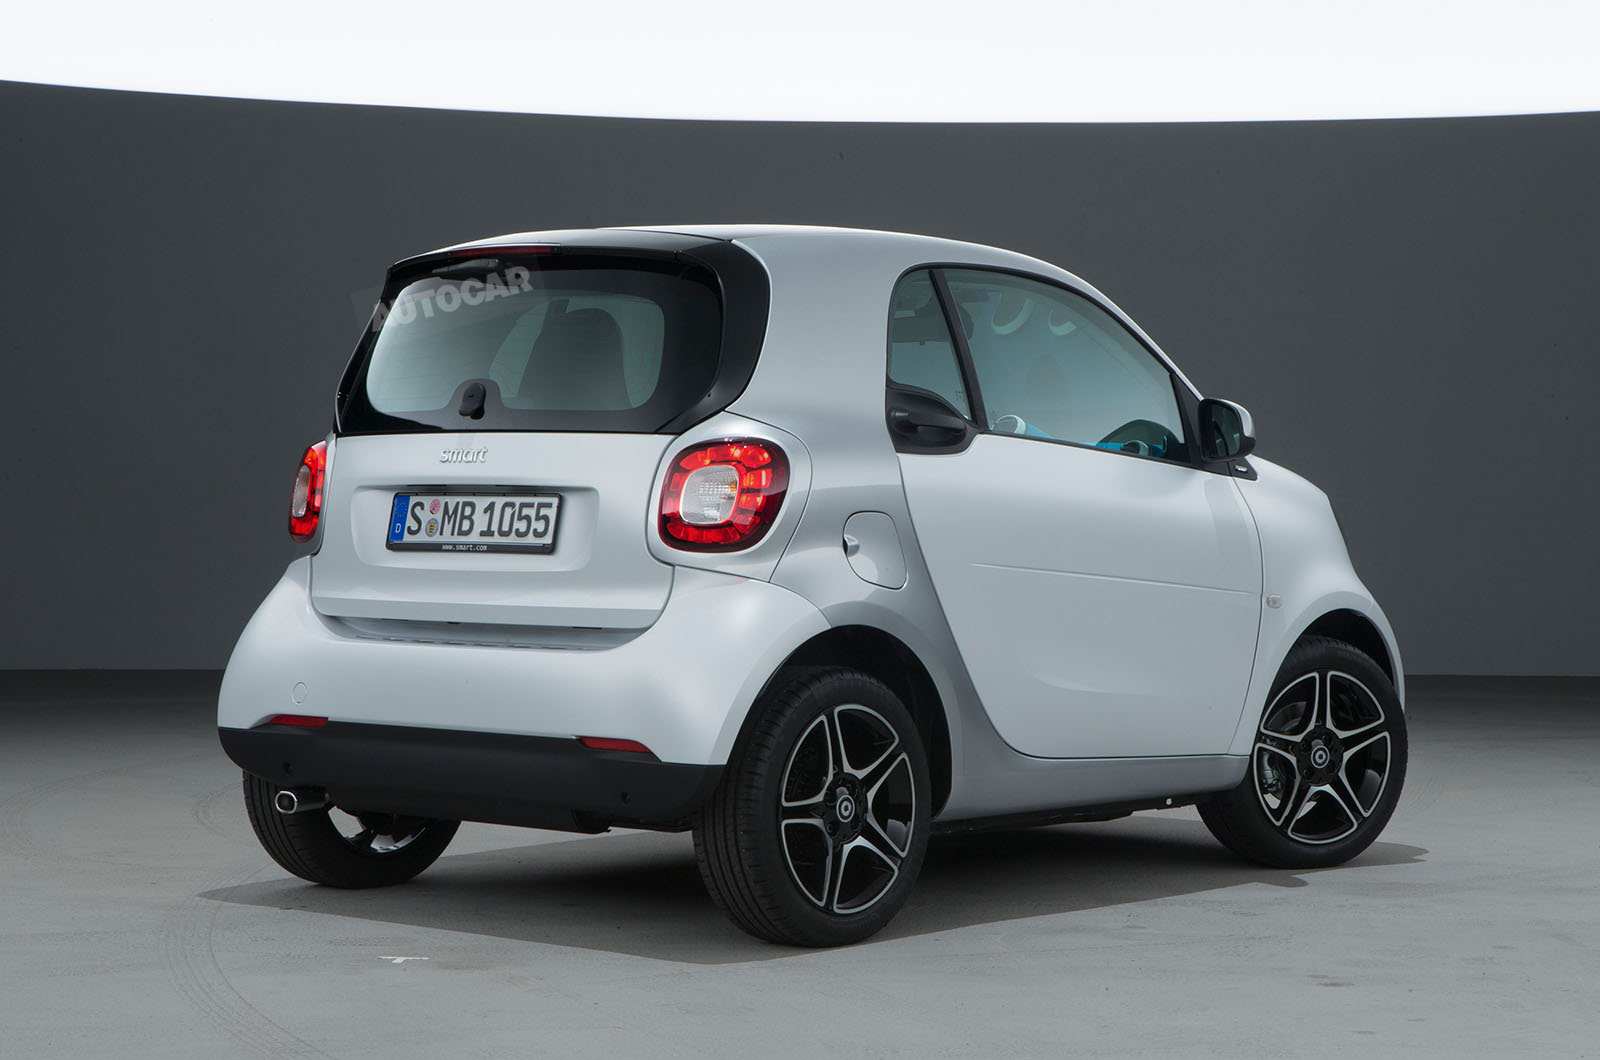 2016 Smart Fortwo And Forfour Photos Revealed